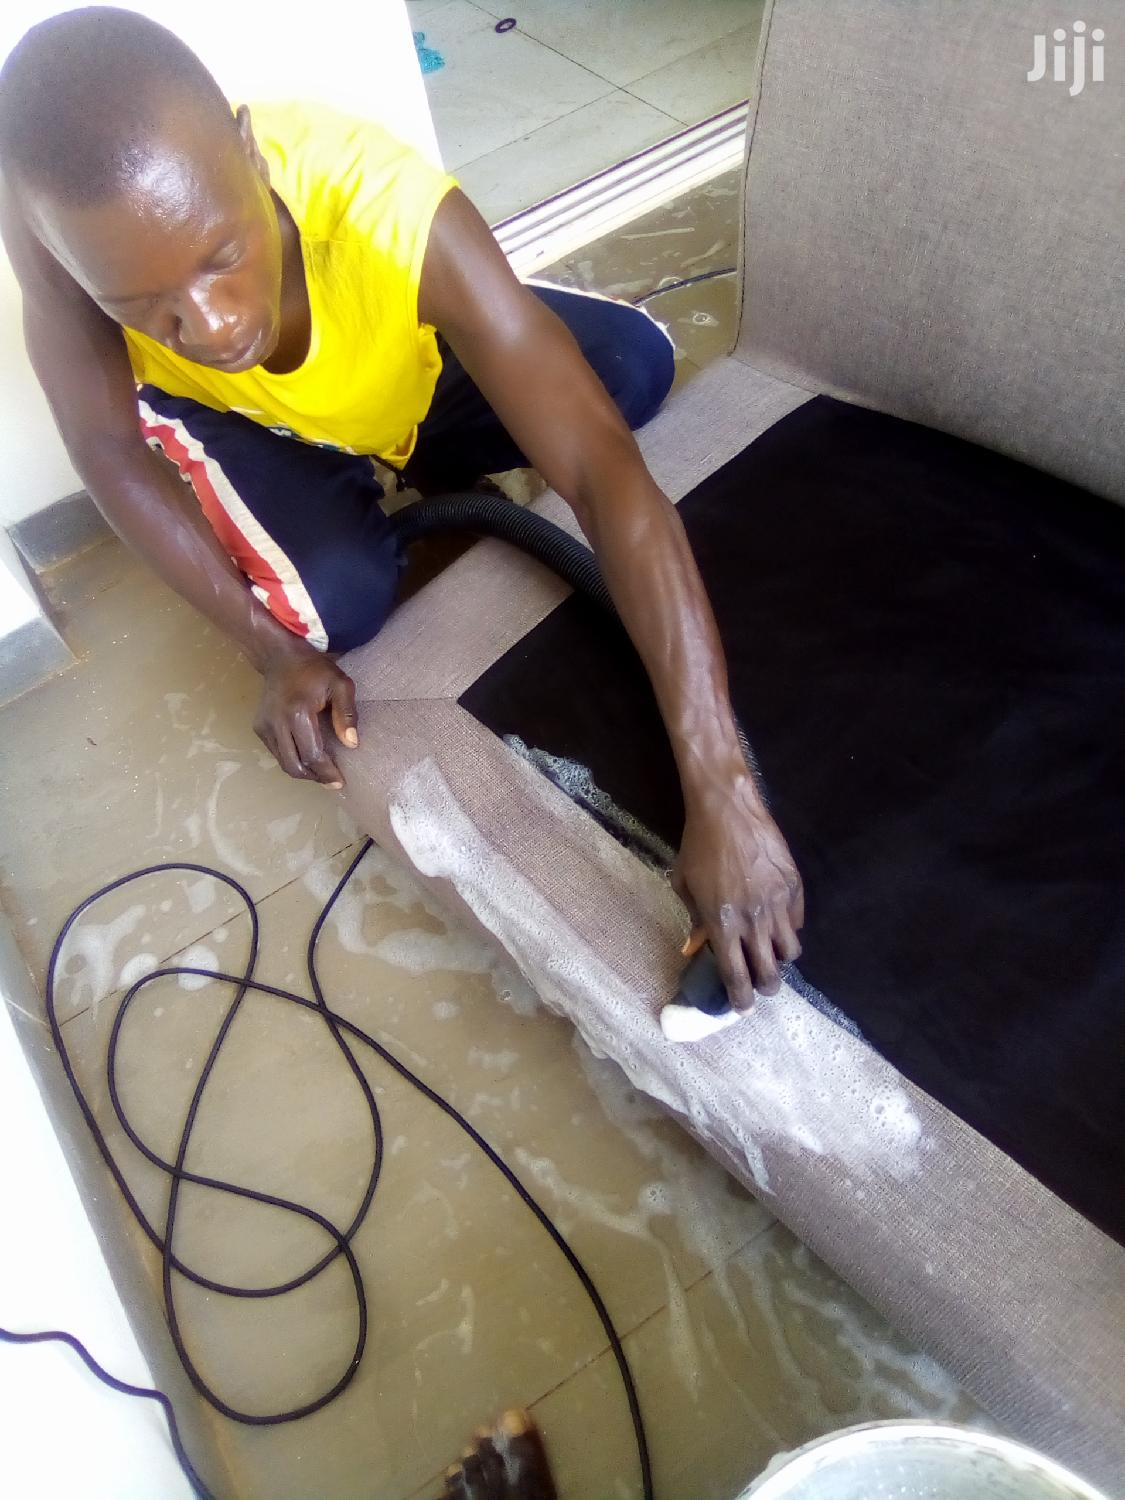 Carpet Cleaning, Sofa Cleaning And Fumigation Pest Spraying | Cleaning Services for sale in Kampala, Central Region, Uganda